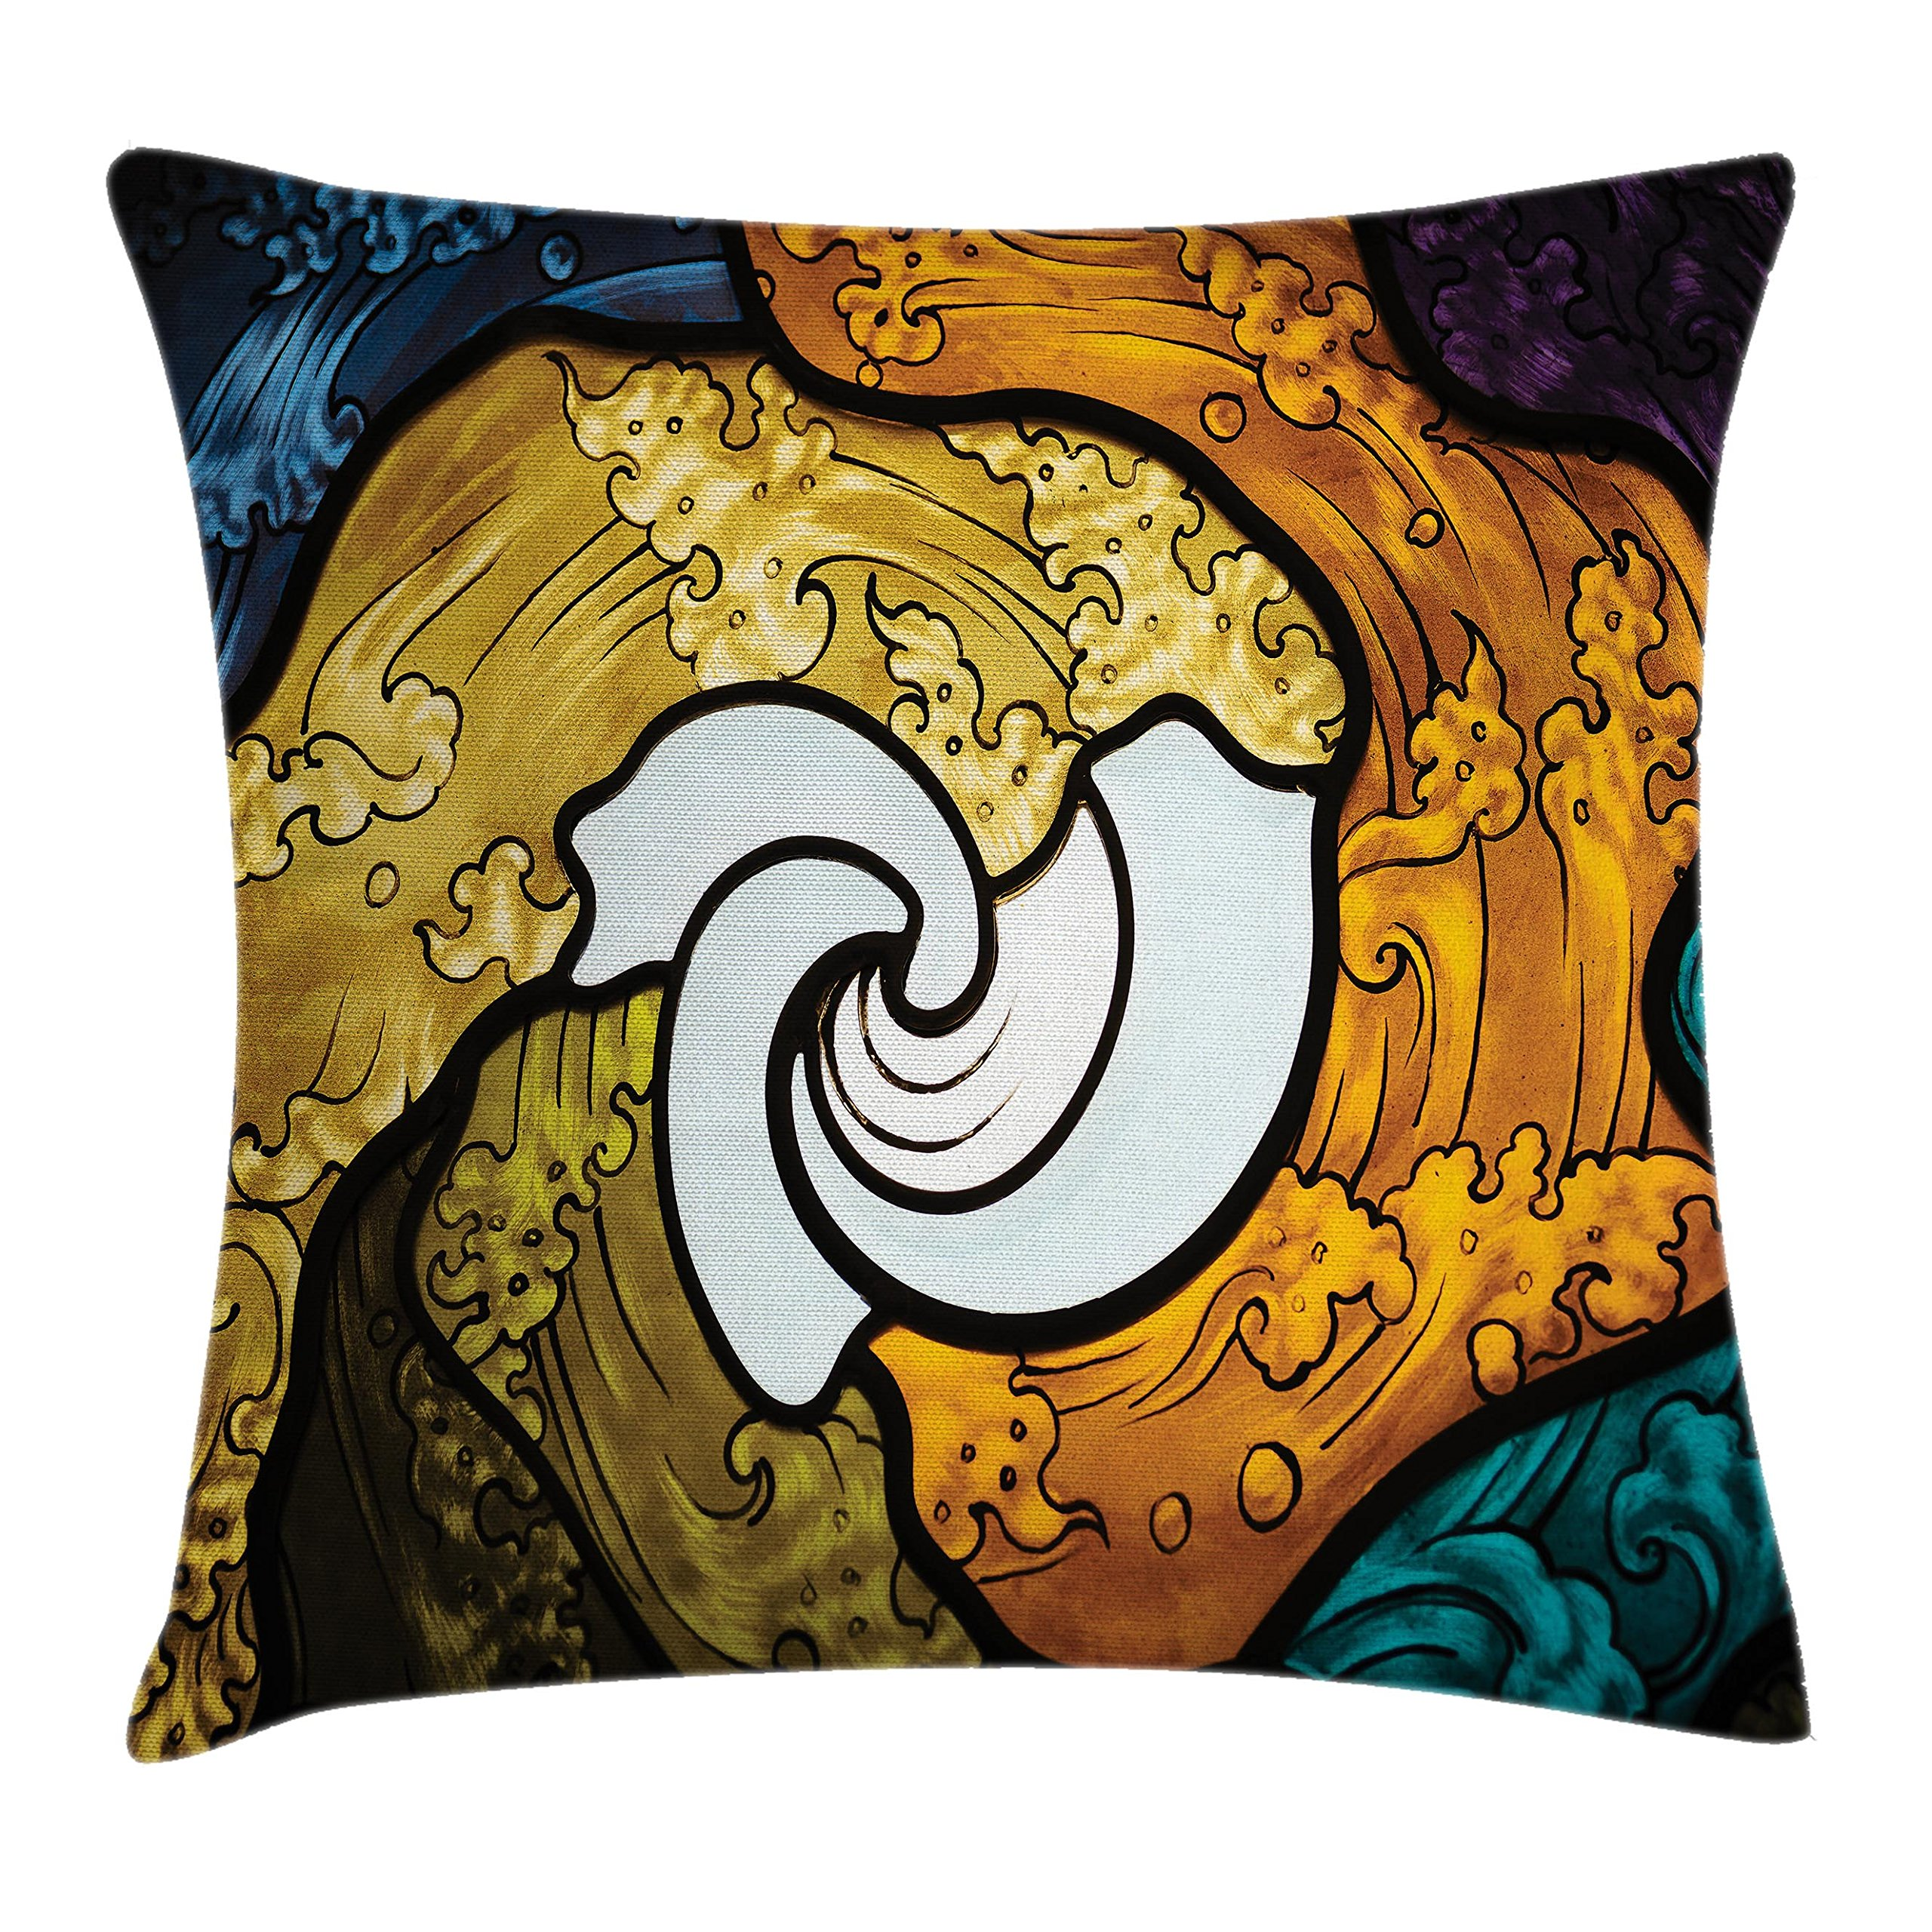 Ambesonne Trippy Decor Throw Pillow Cushion Cover by, Pop Art Style Funky Unusual Stained Glass Window Thai Art Pattern Traditional Image, Decorative Square Accent Pillow Case, 18 X 18 Inches, Multi by Ambesonne